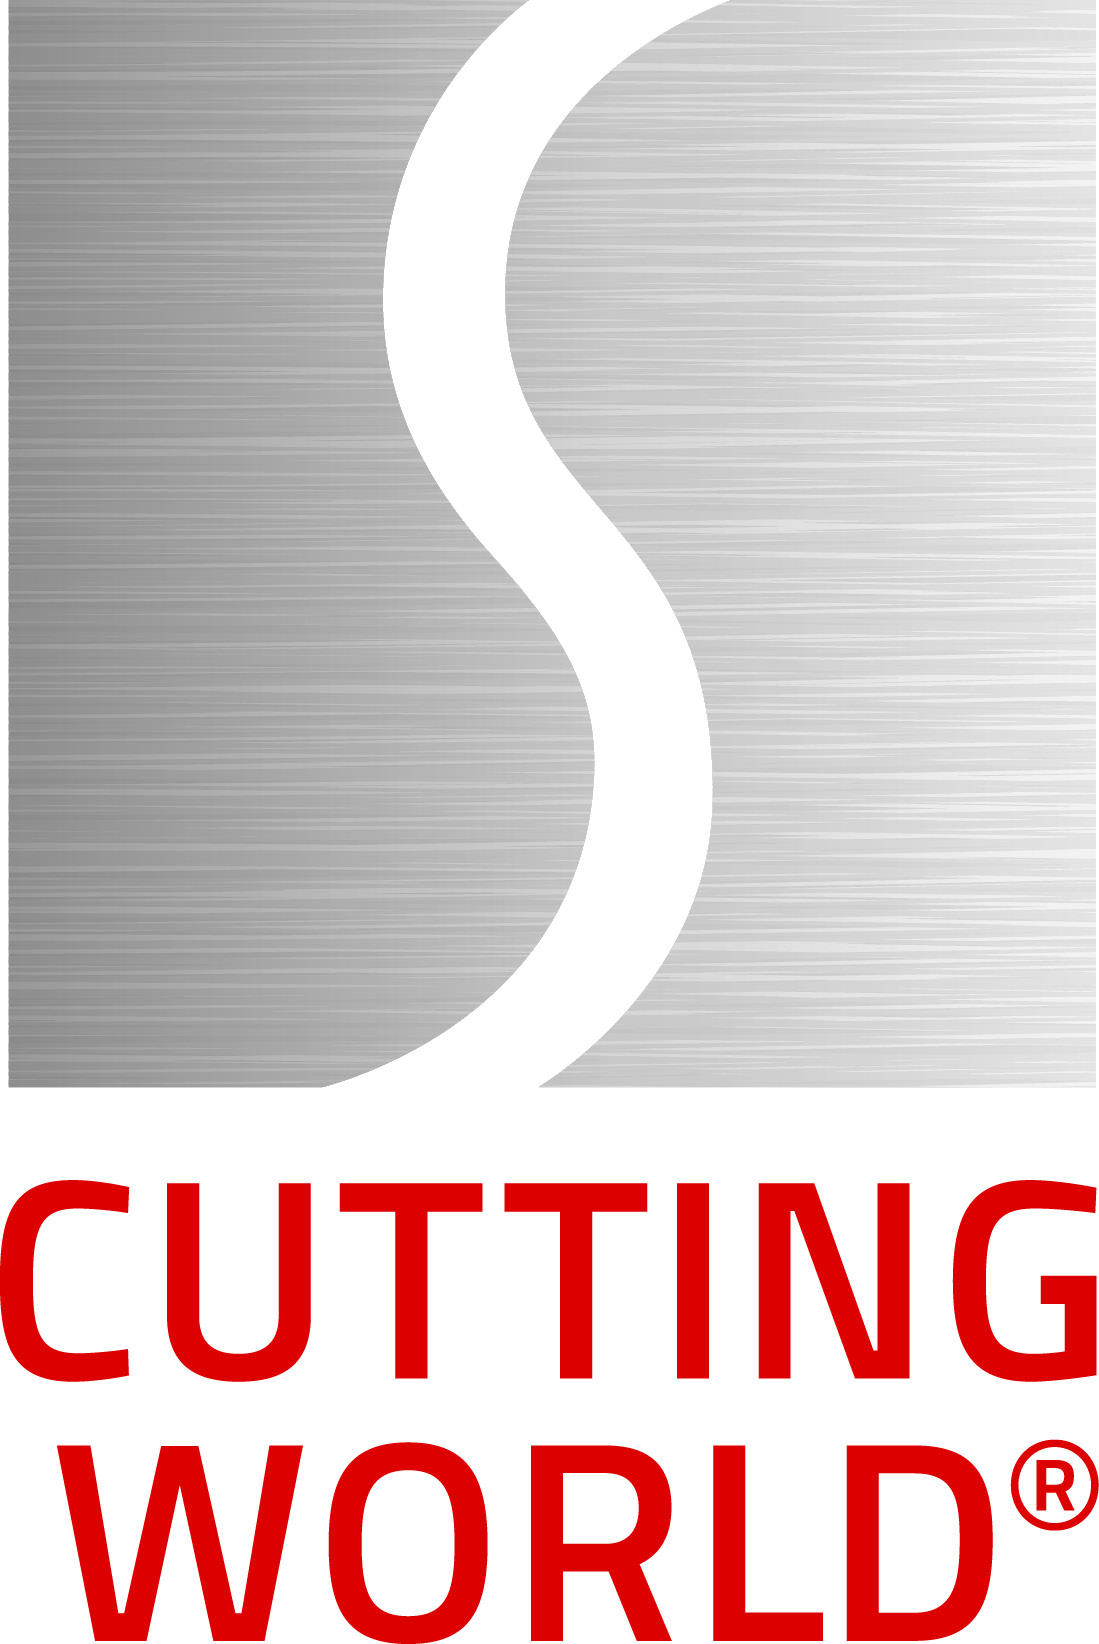 CUTTING WORLD